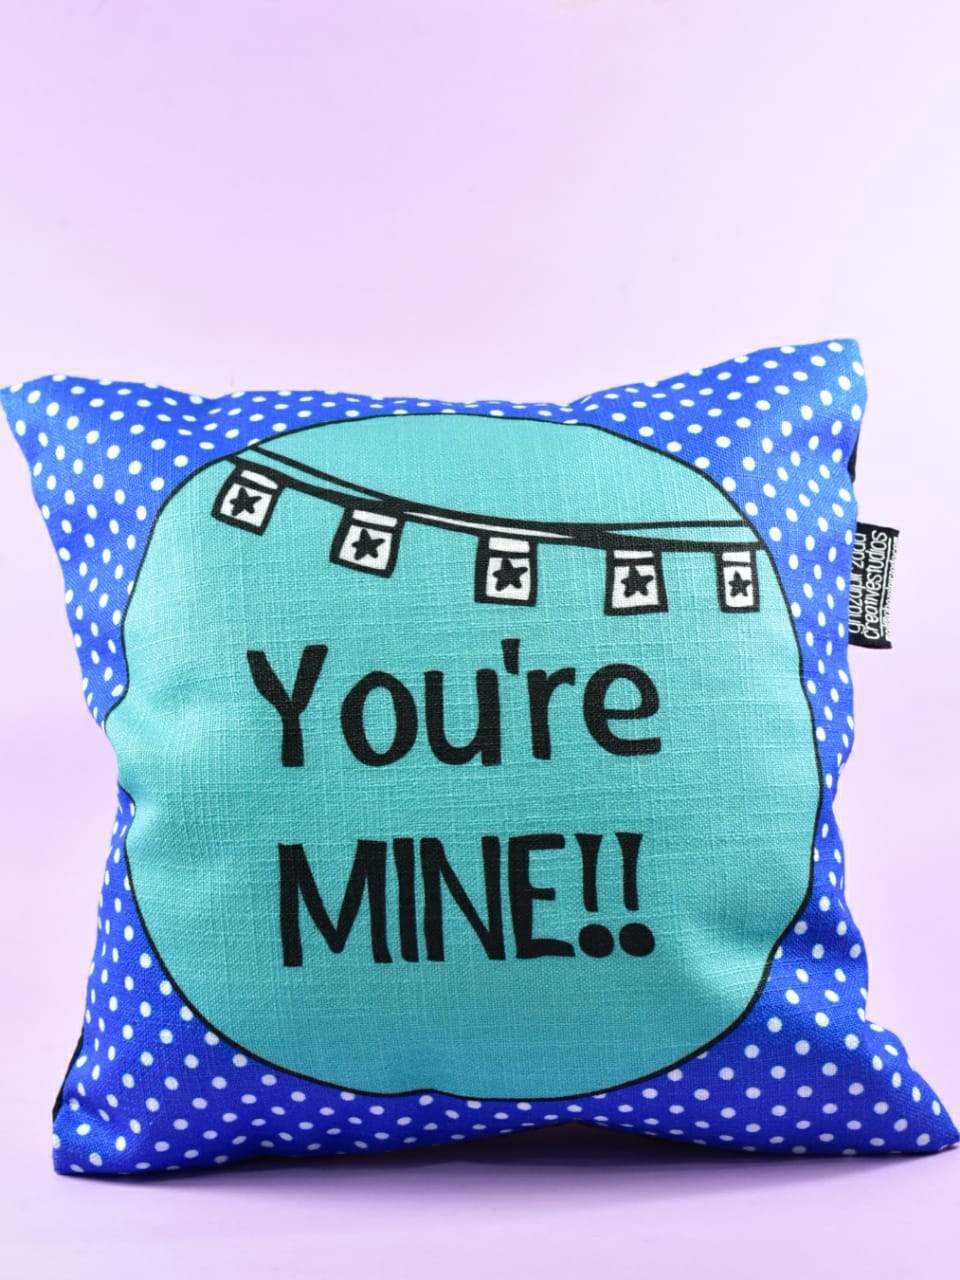 You're mine - Cushion Cover